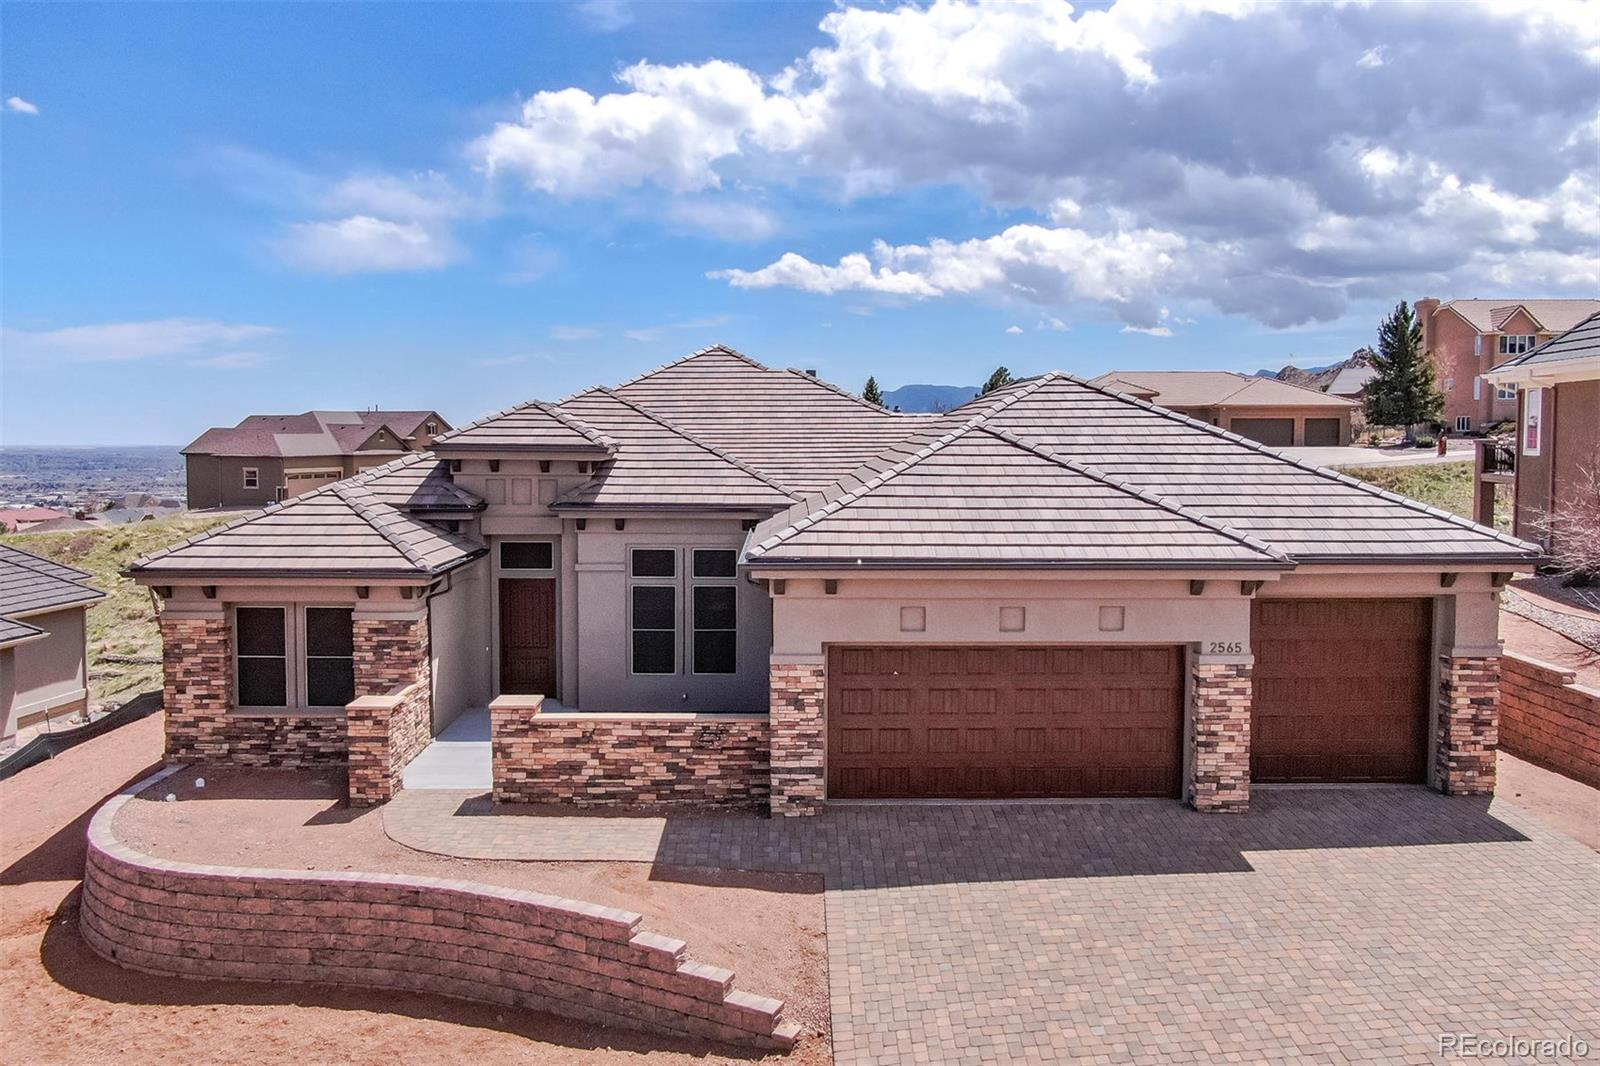 2565 Brogans Bluff Drive, Colorado Springs, CO 80919 - Colorado Springs, CO real estate listing